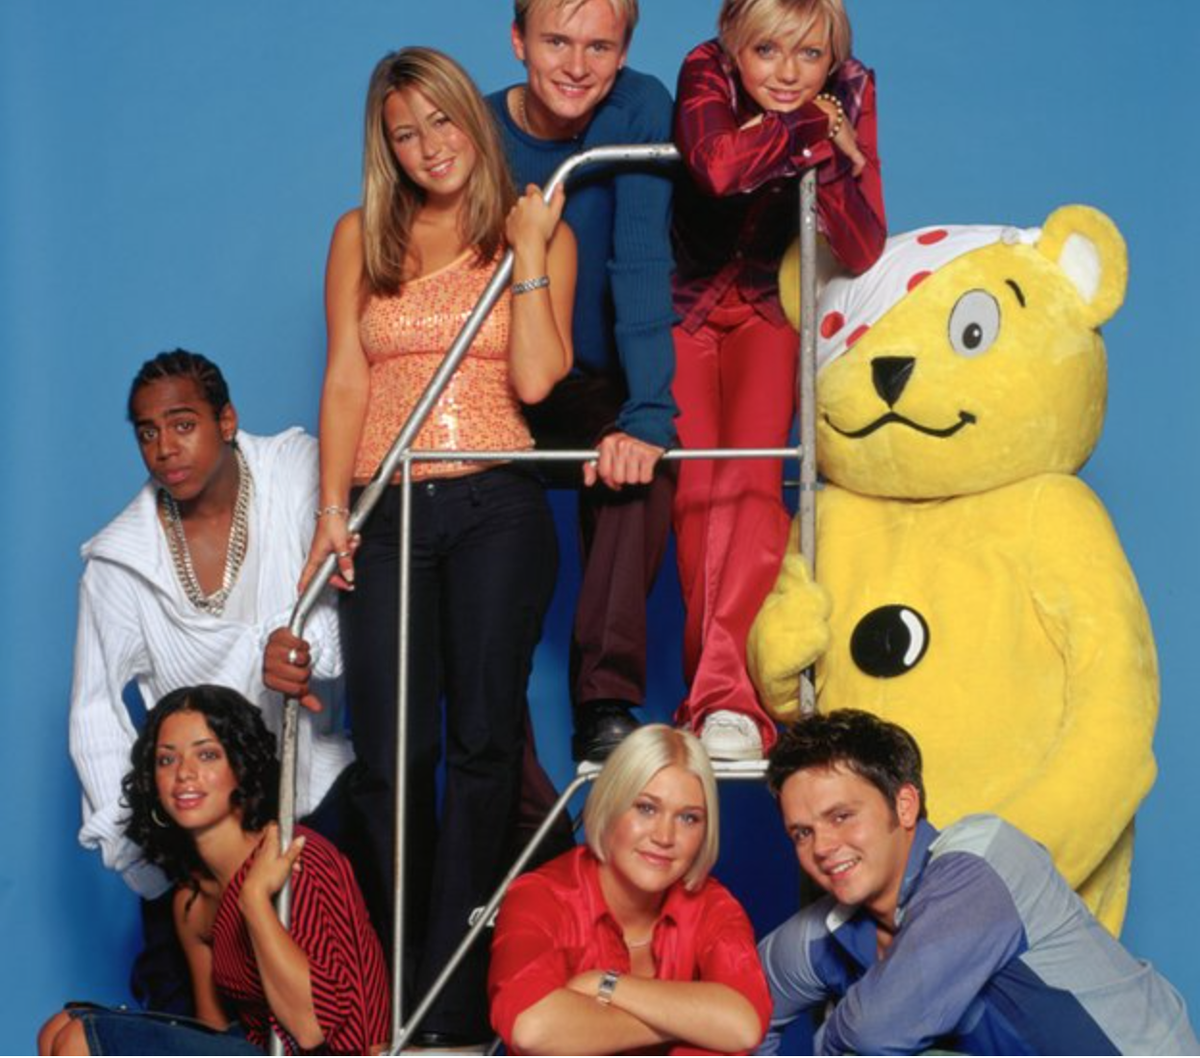 Only one more sleep until @BBCCiN with @SClub7! So.. here's my Children In Need #tbt #bringitallback - too exciting! http://t.co/WyDRmuNAvn